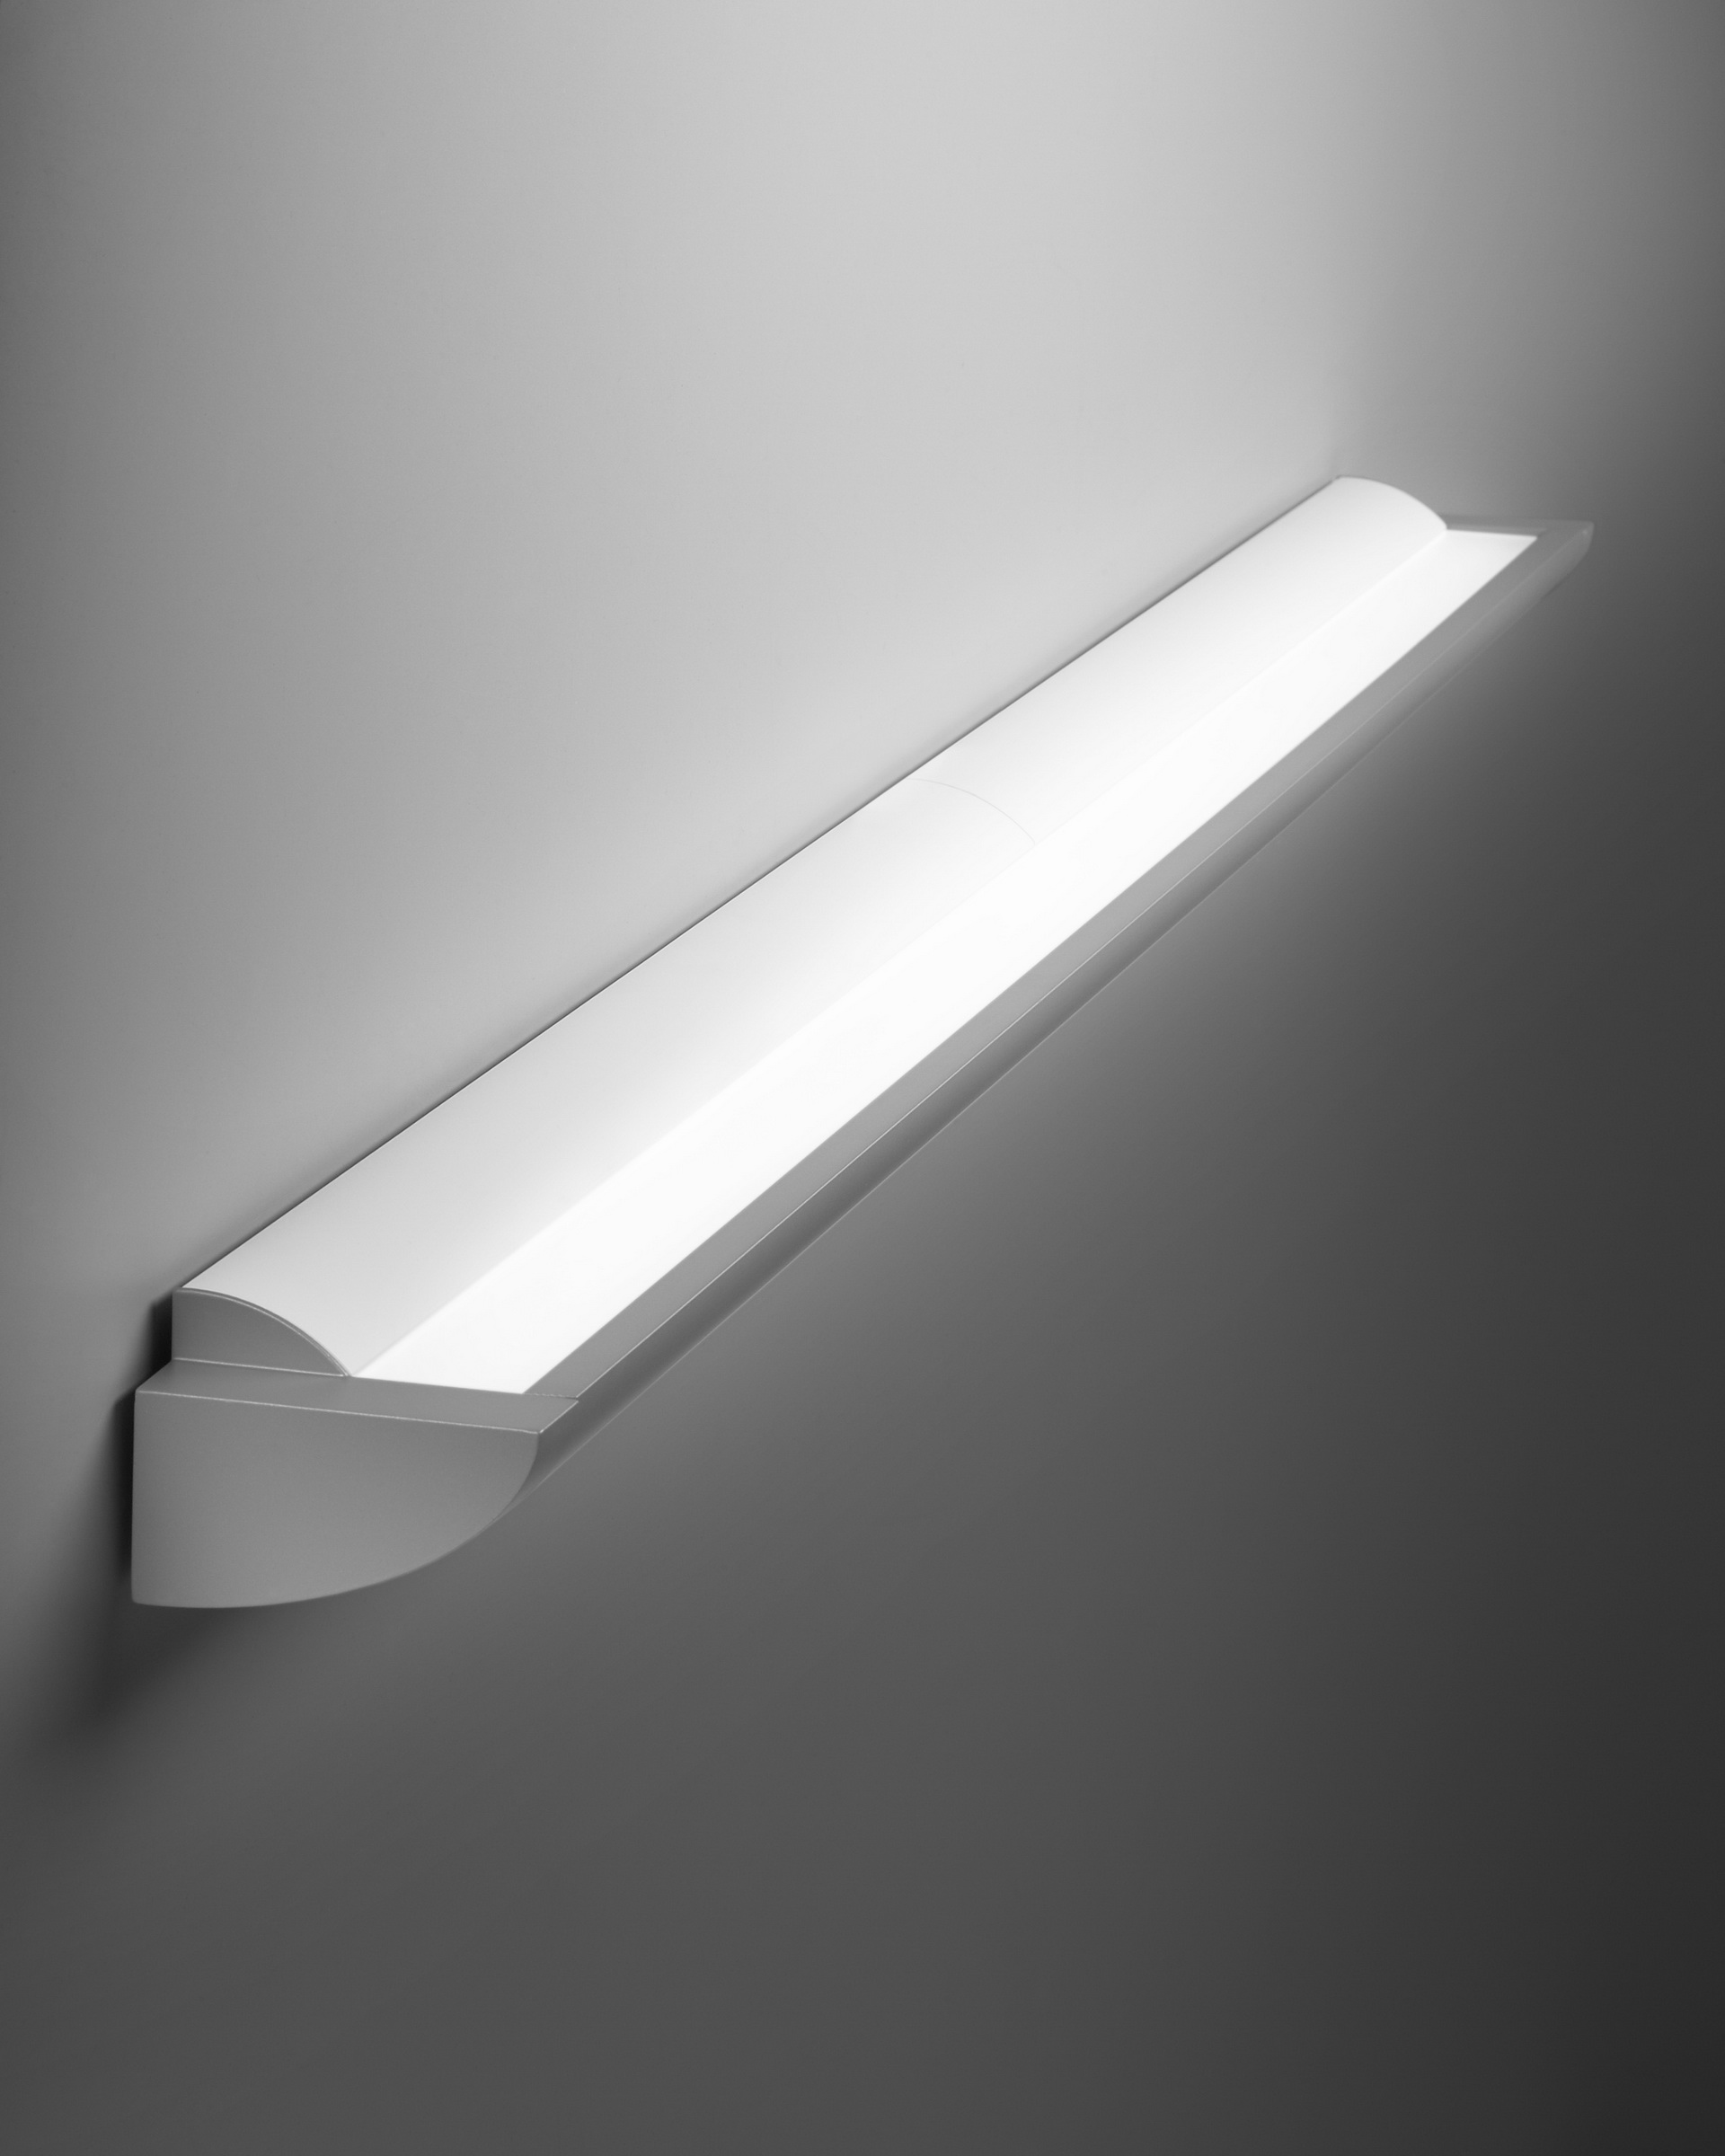 Exterior wall mount led lights - the Most Ideal for Your ... on Wall Mounted Decorative Lights id=79547